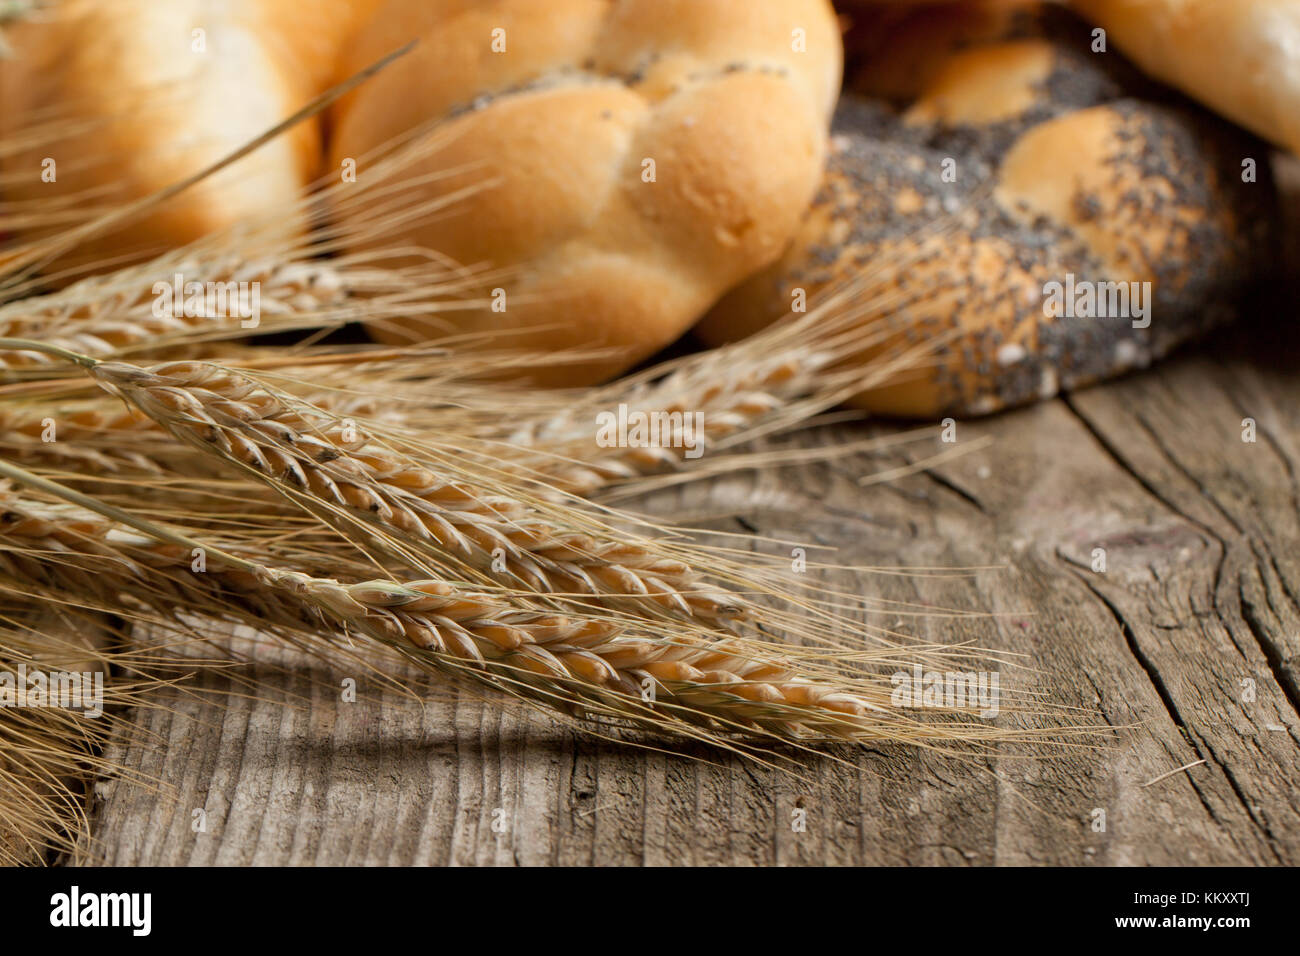 Dried ears of corn on old wooden table with fresh bread as background - Stock Image